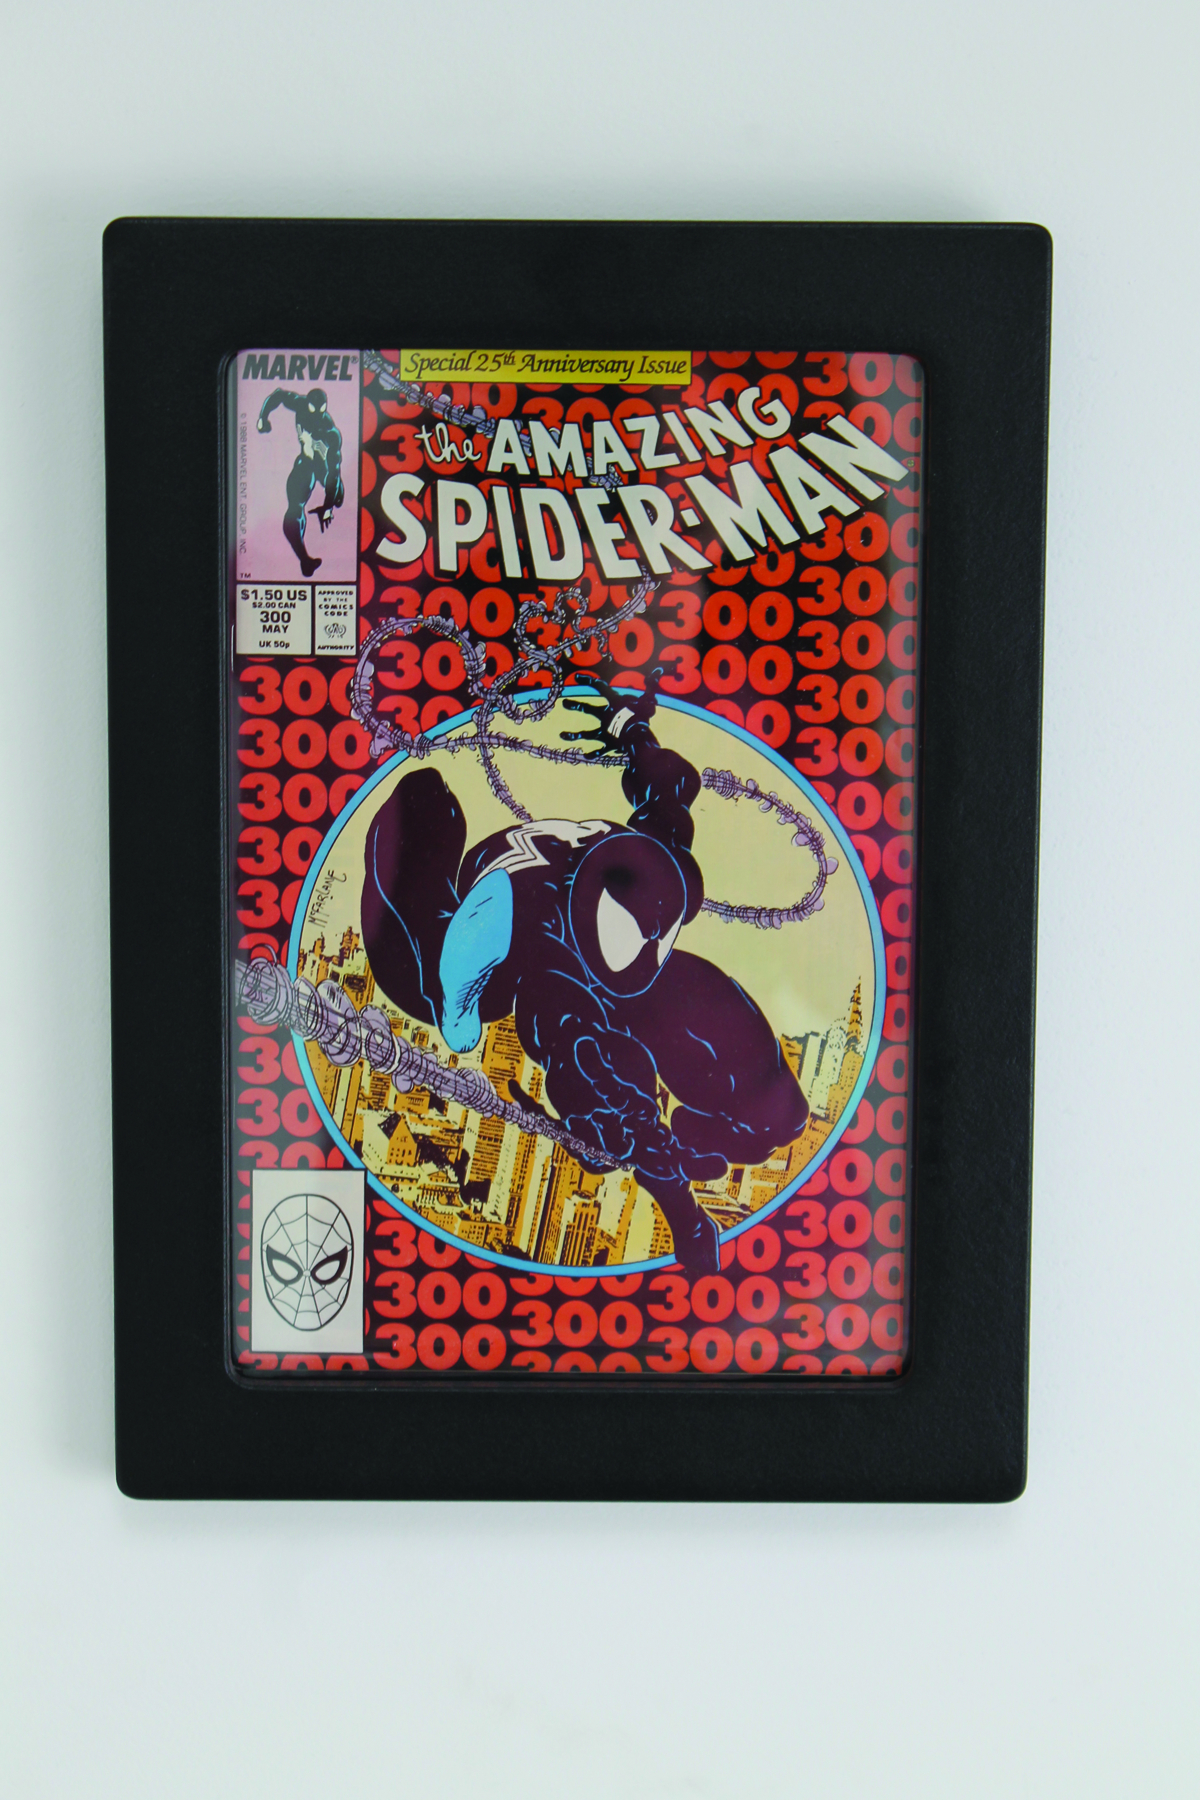 COMIC BOOK POD MUSEUM ED DISPLAY FRAME ASST